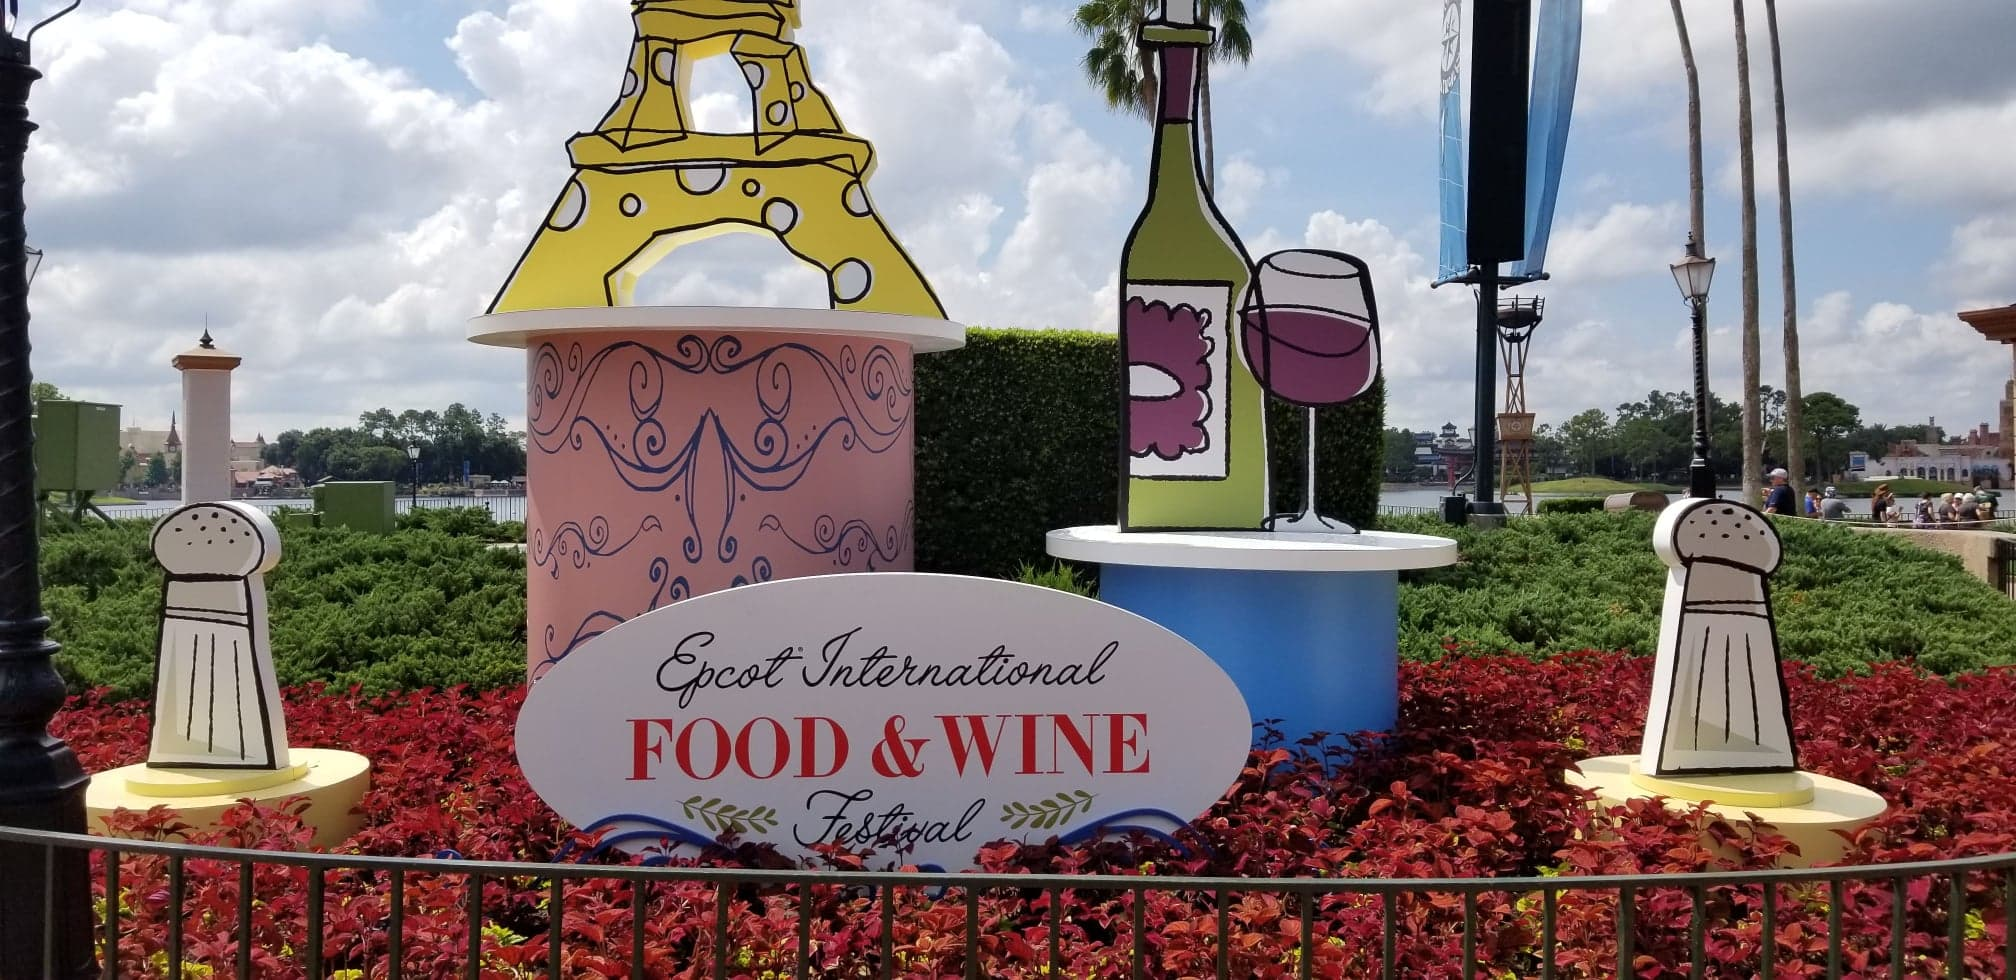 First Look At The Food Booths And Menus For The Taste Of Epcot Food And Wine Festival